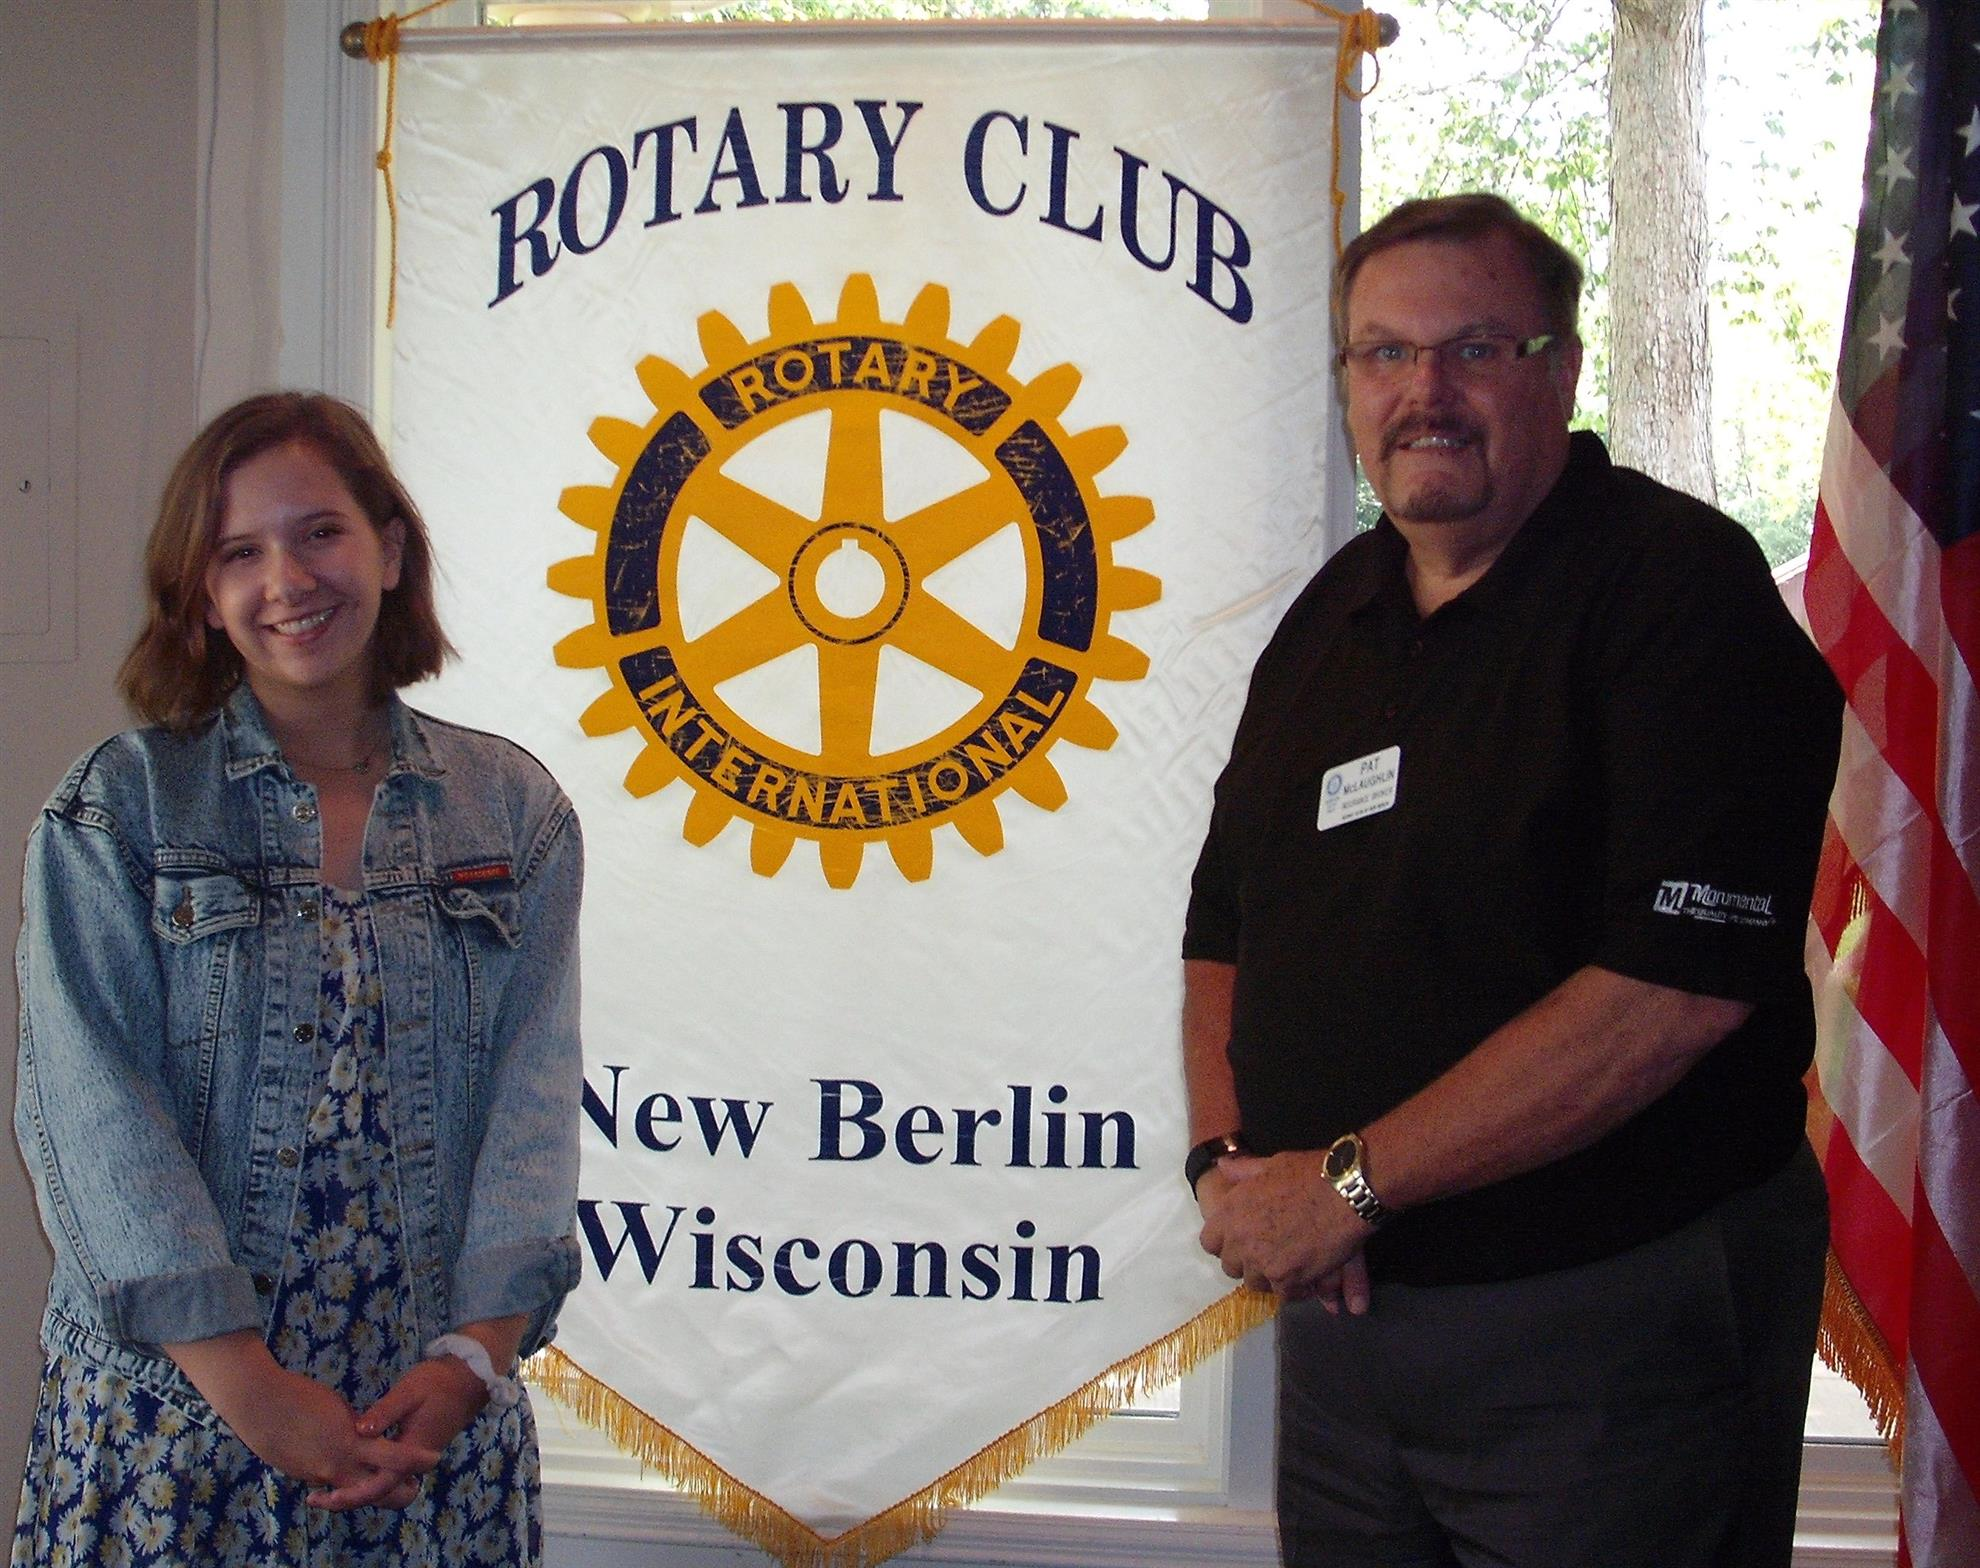 Rotary Club of New Berlin, New Berlin Rotary, World Affairs Seminar